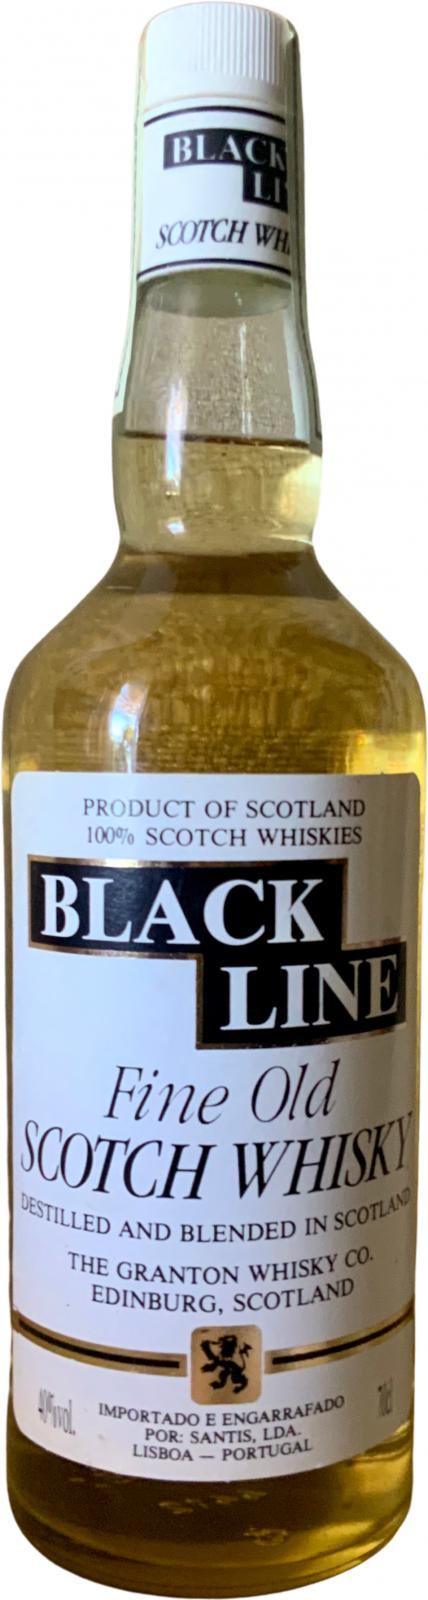 Black Line Fine Old Scotch Whisky